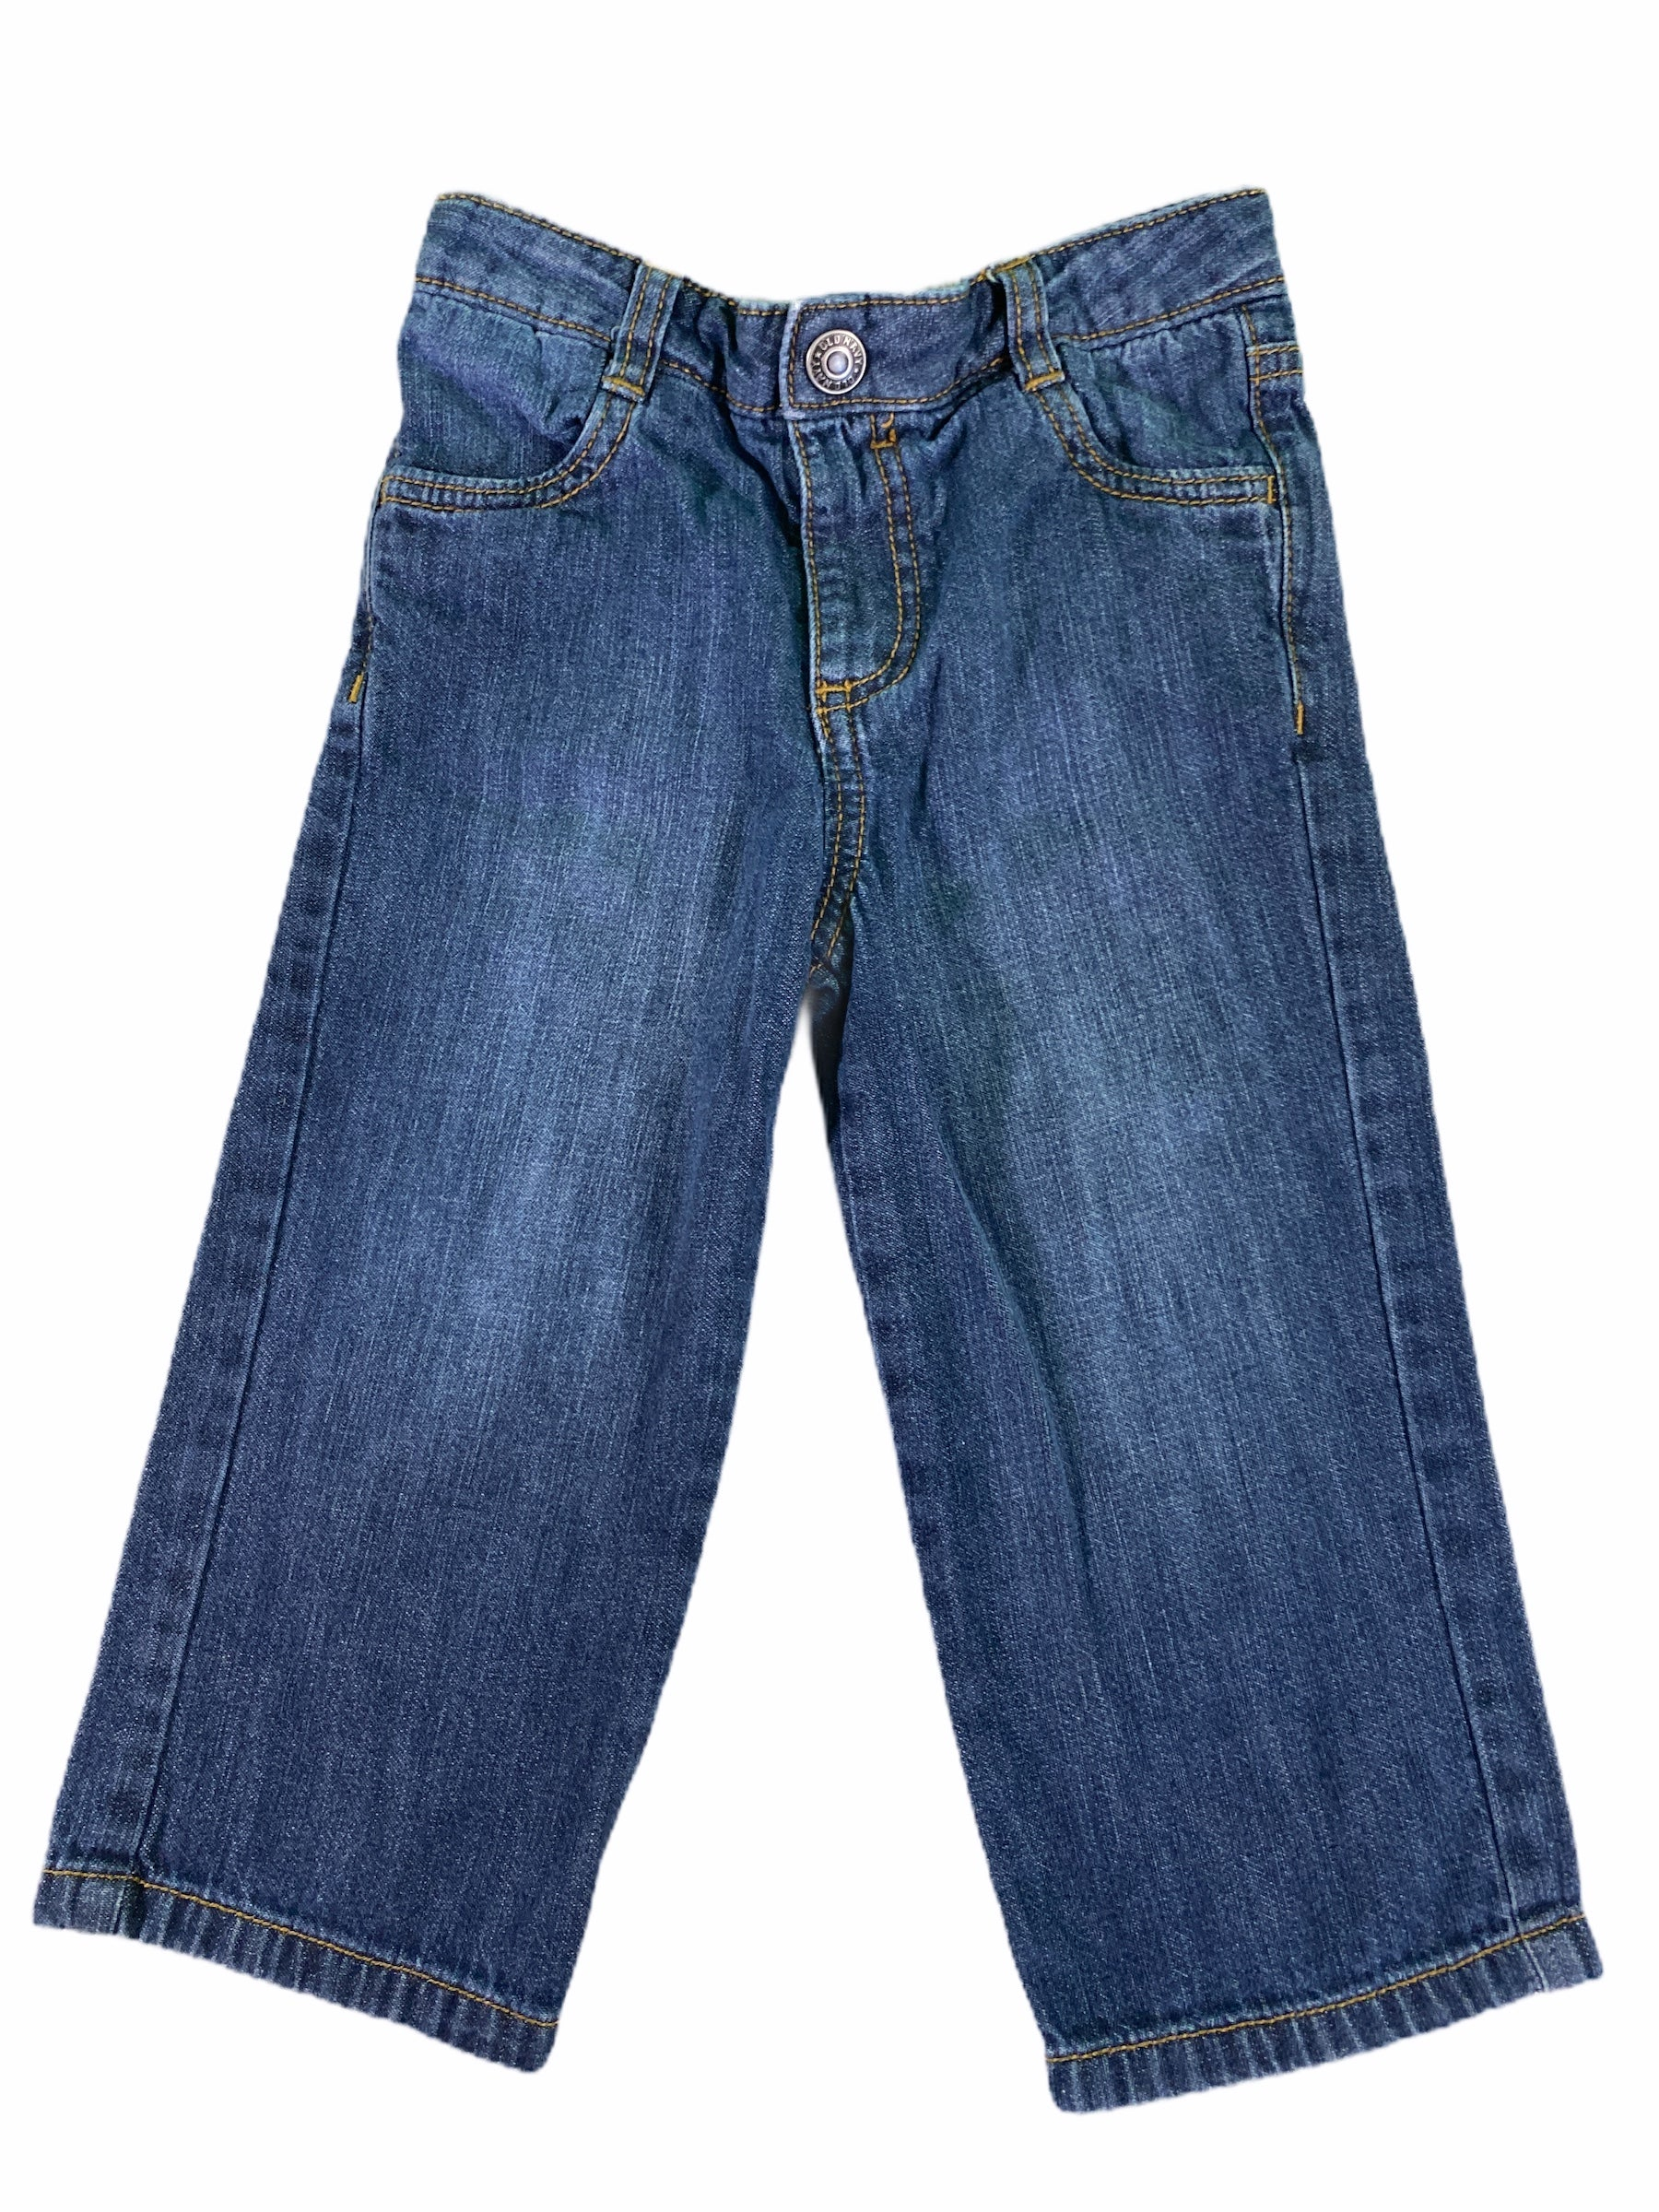 Old Navy Jeans (18/24M Boys)